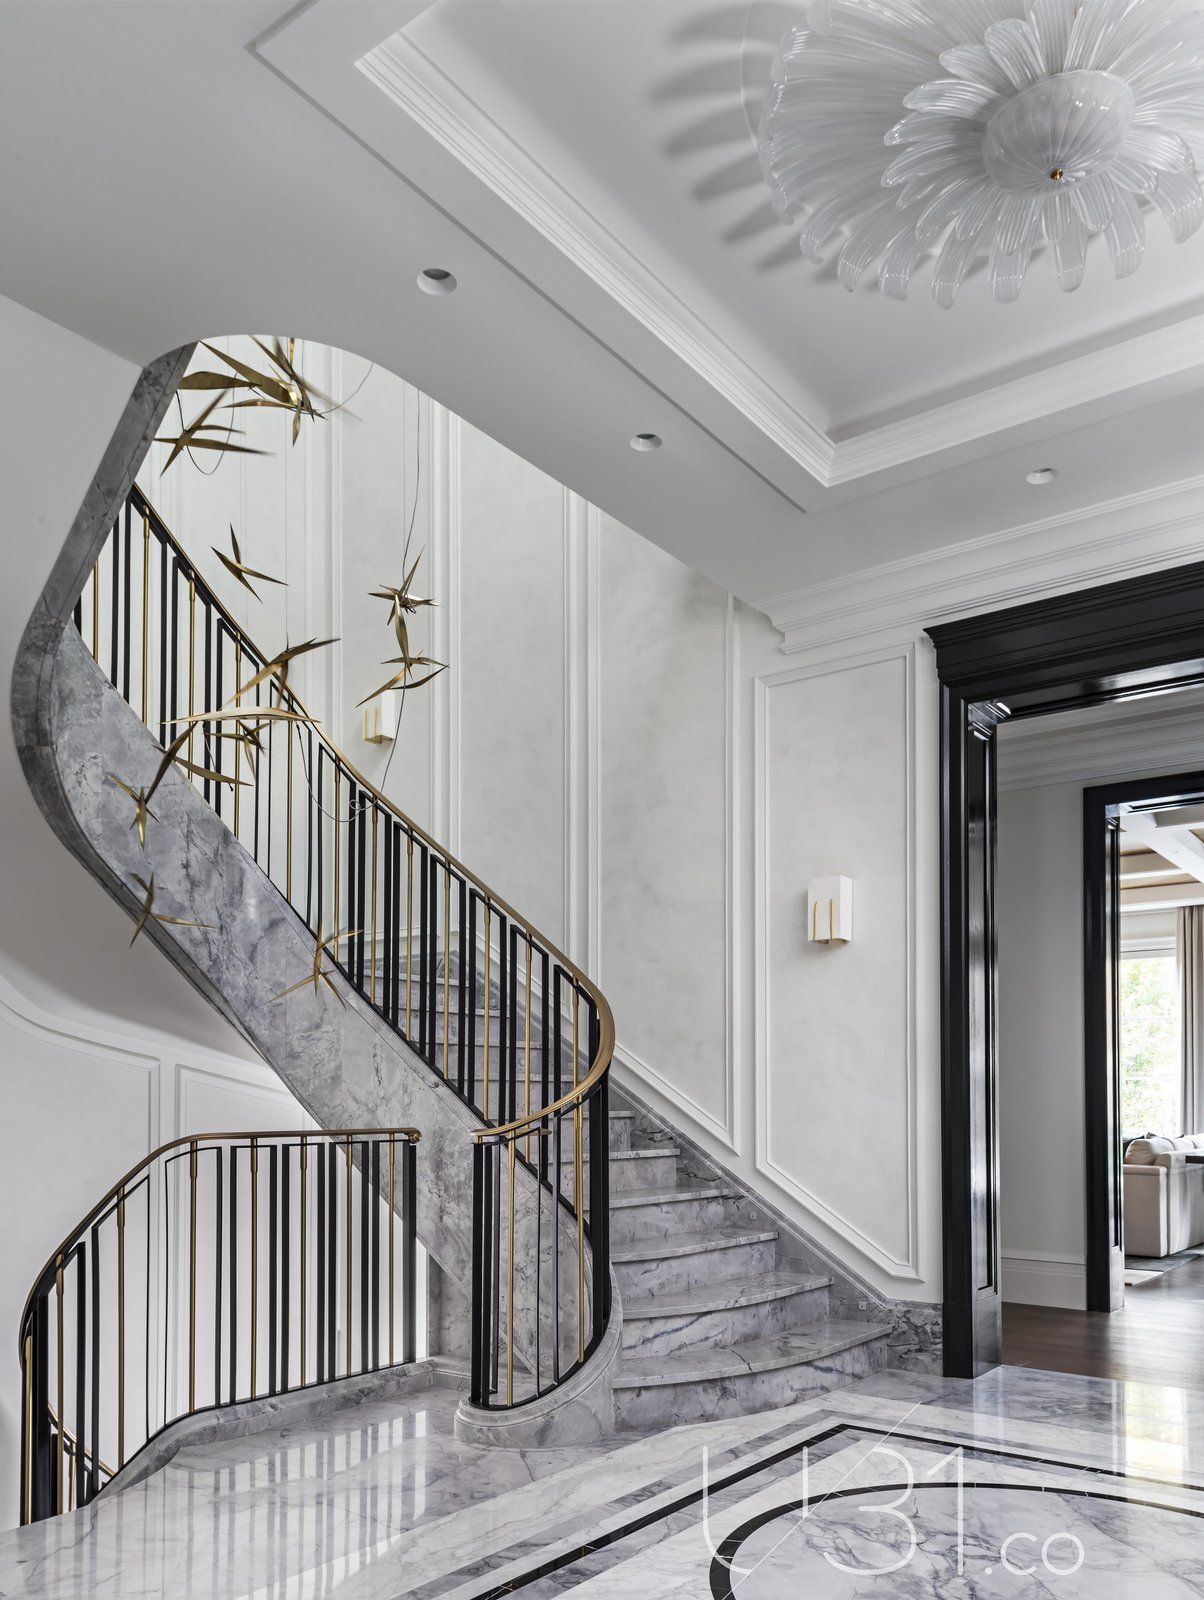 Hallway And Marble Floor Foyer Photo 4 Of 15 In Country Estate By U31 Design Interior Staircase Modern Staircase Stairs Design